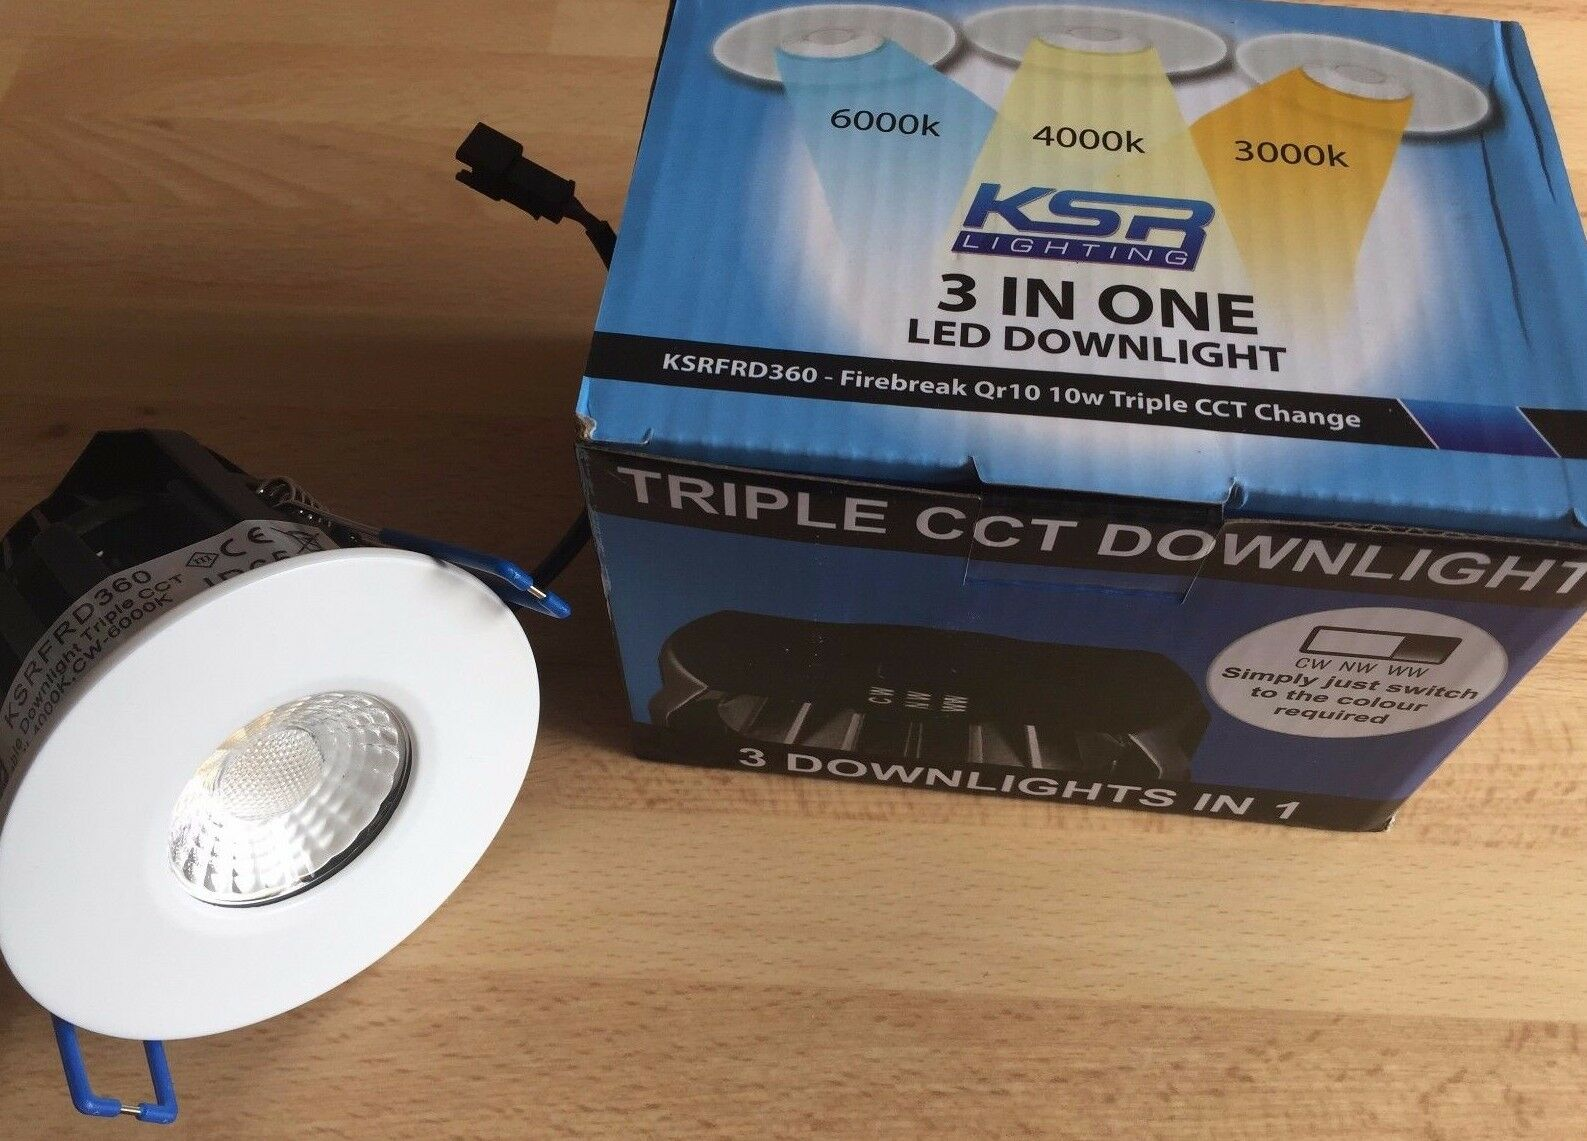 LED 10 Watt Colour Switchable Downlight KSRFRD374-Replaces KSRFRD200 230 Units